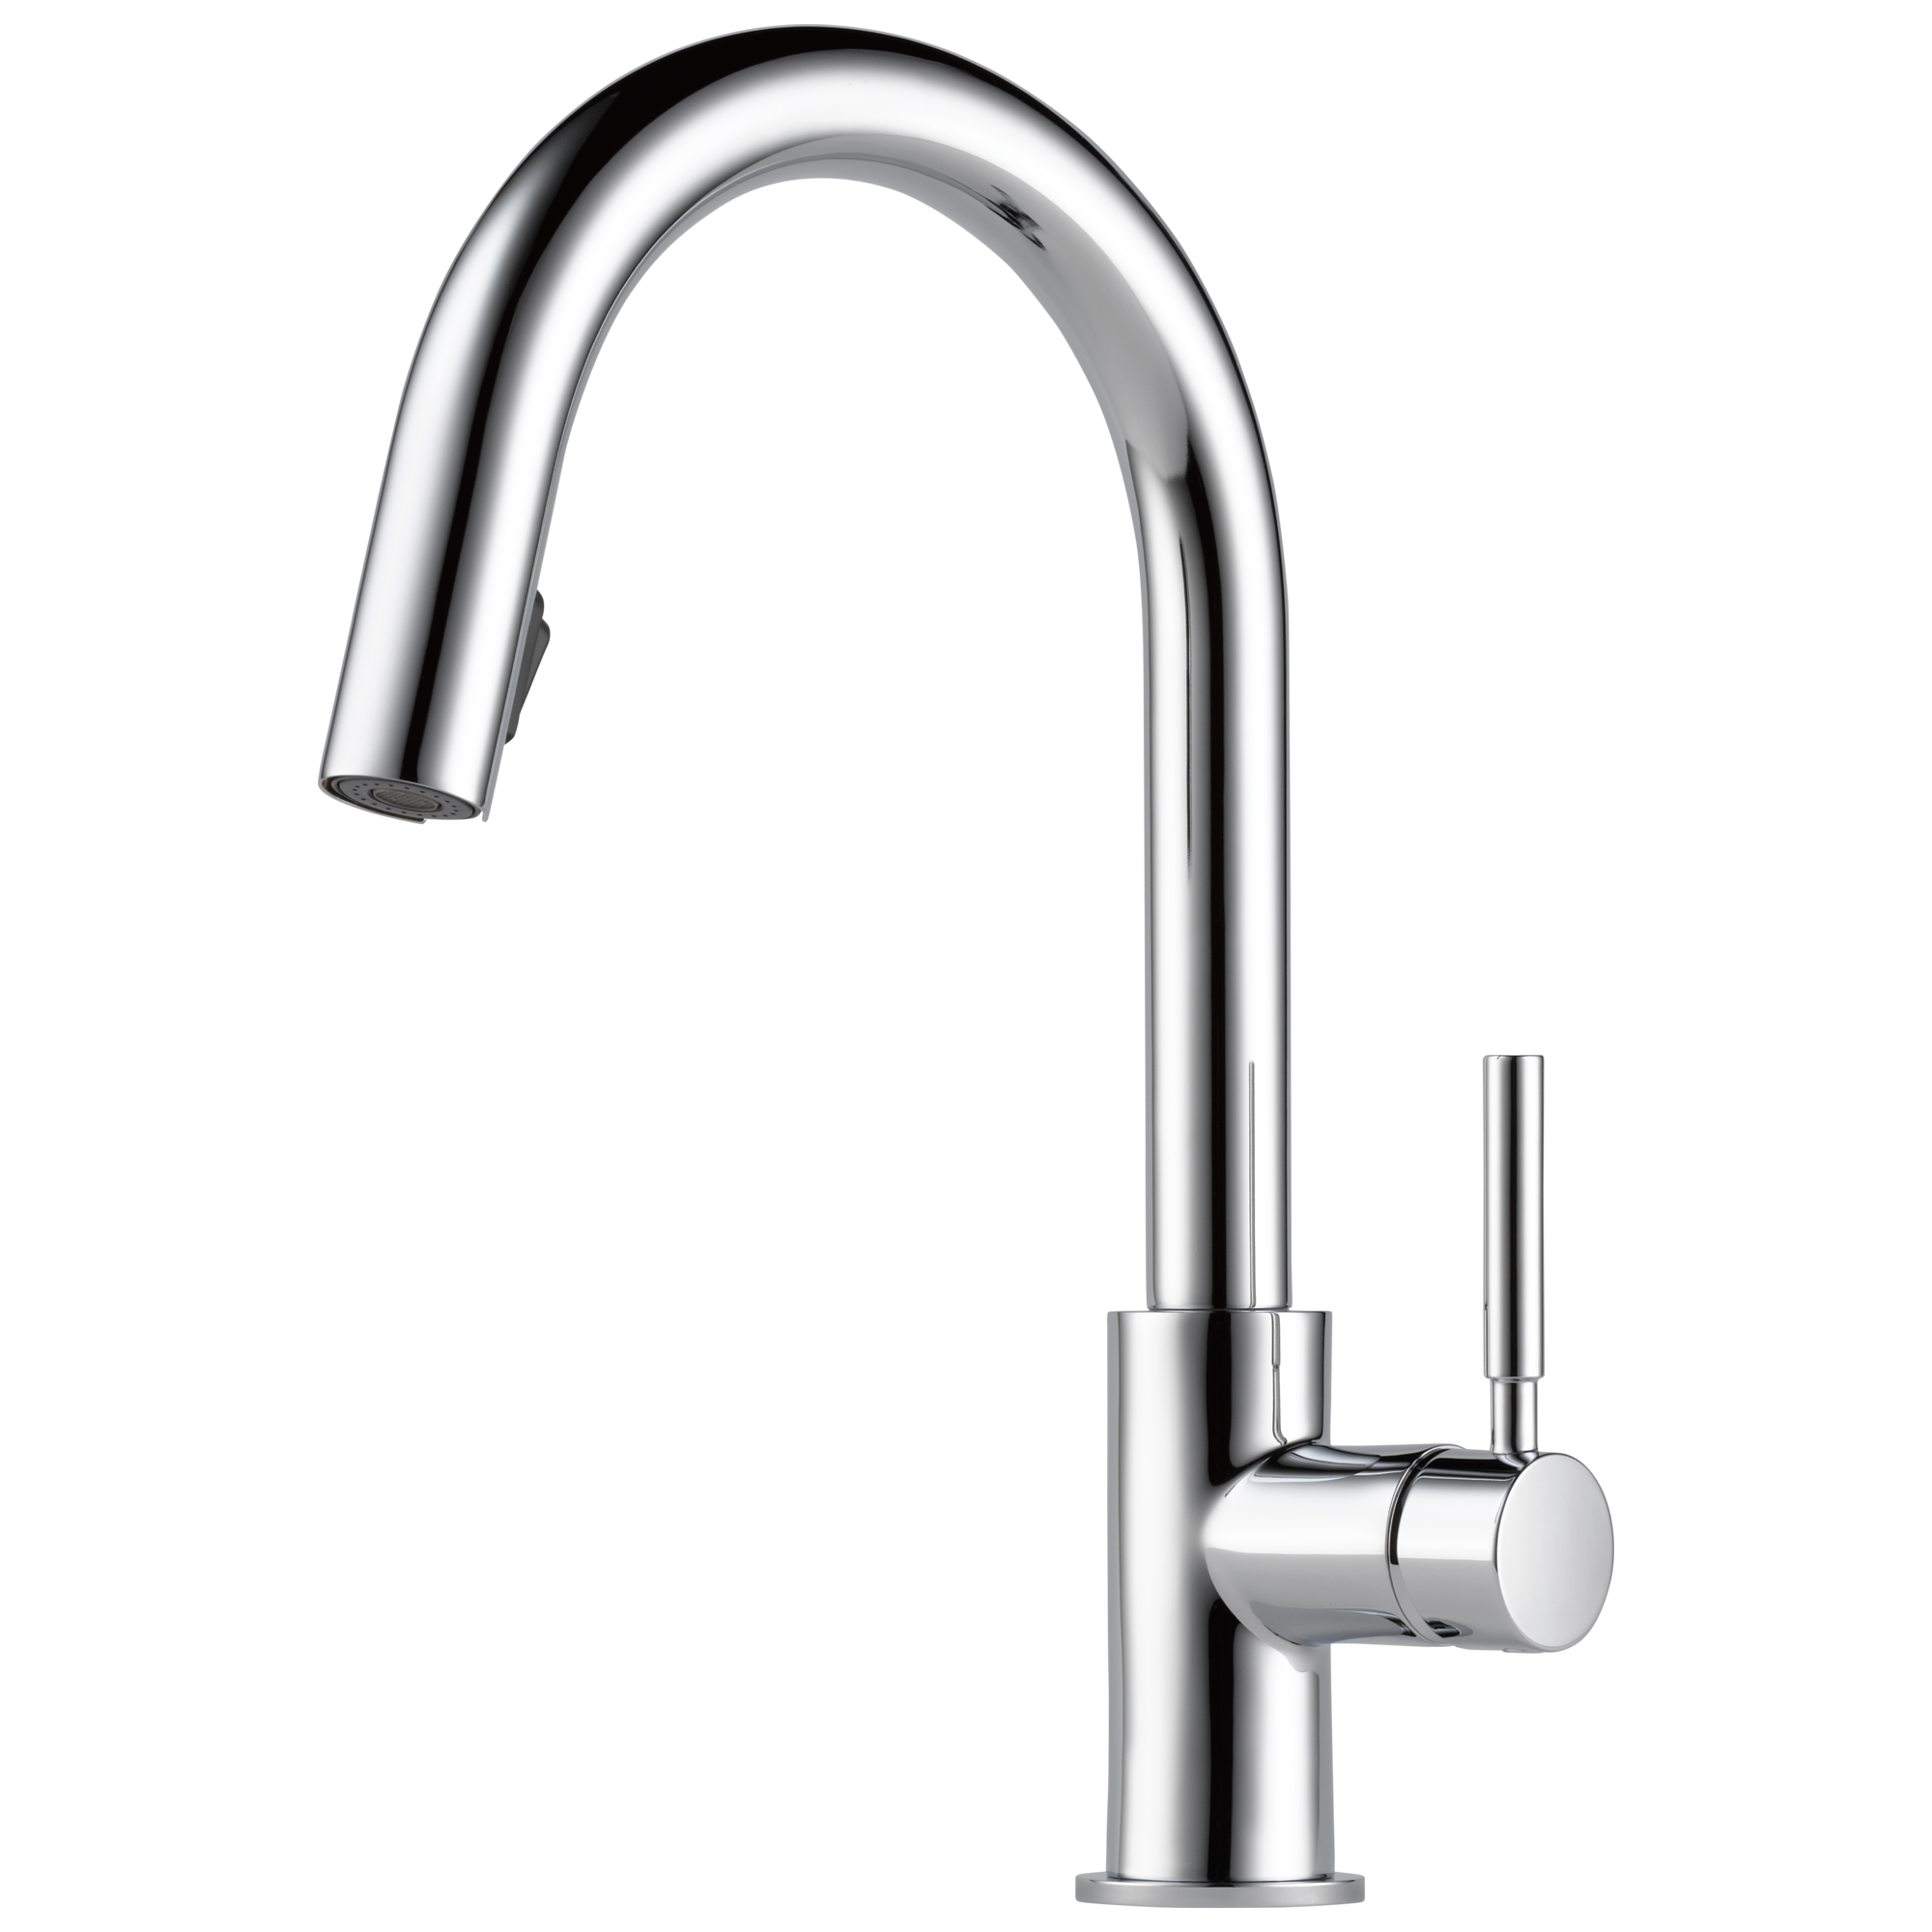 Single Handle Pull Down Kitchen Faucet 63020lf Pc Solna Replacement Parts Moen Life Foreign Diagrams Accessories Download Image